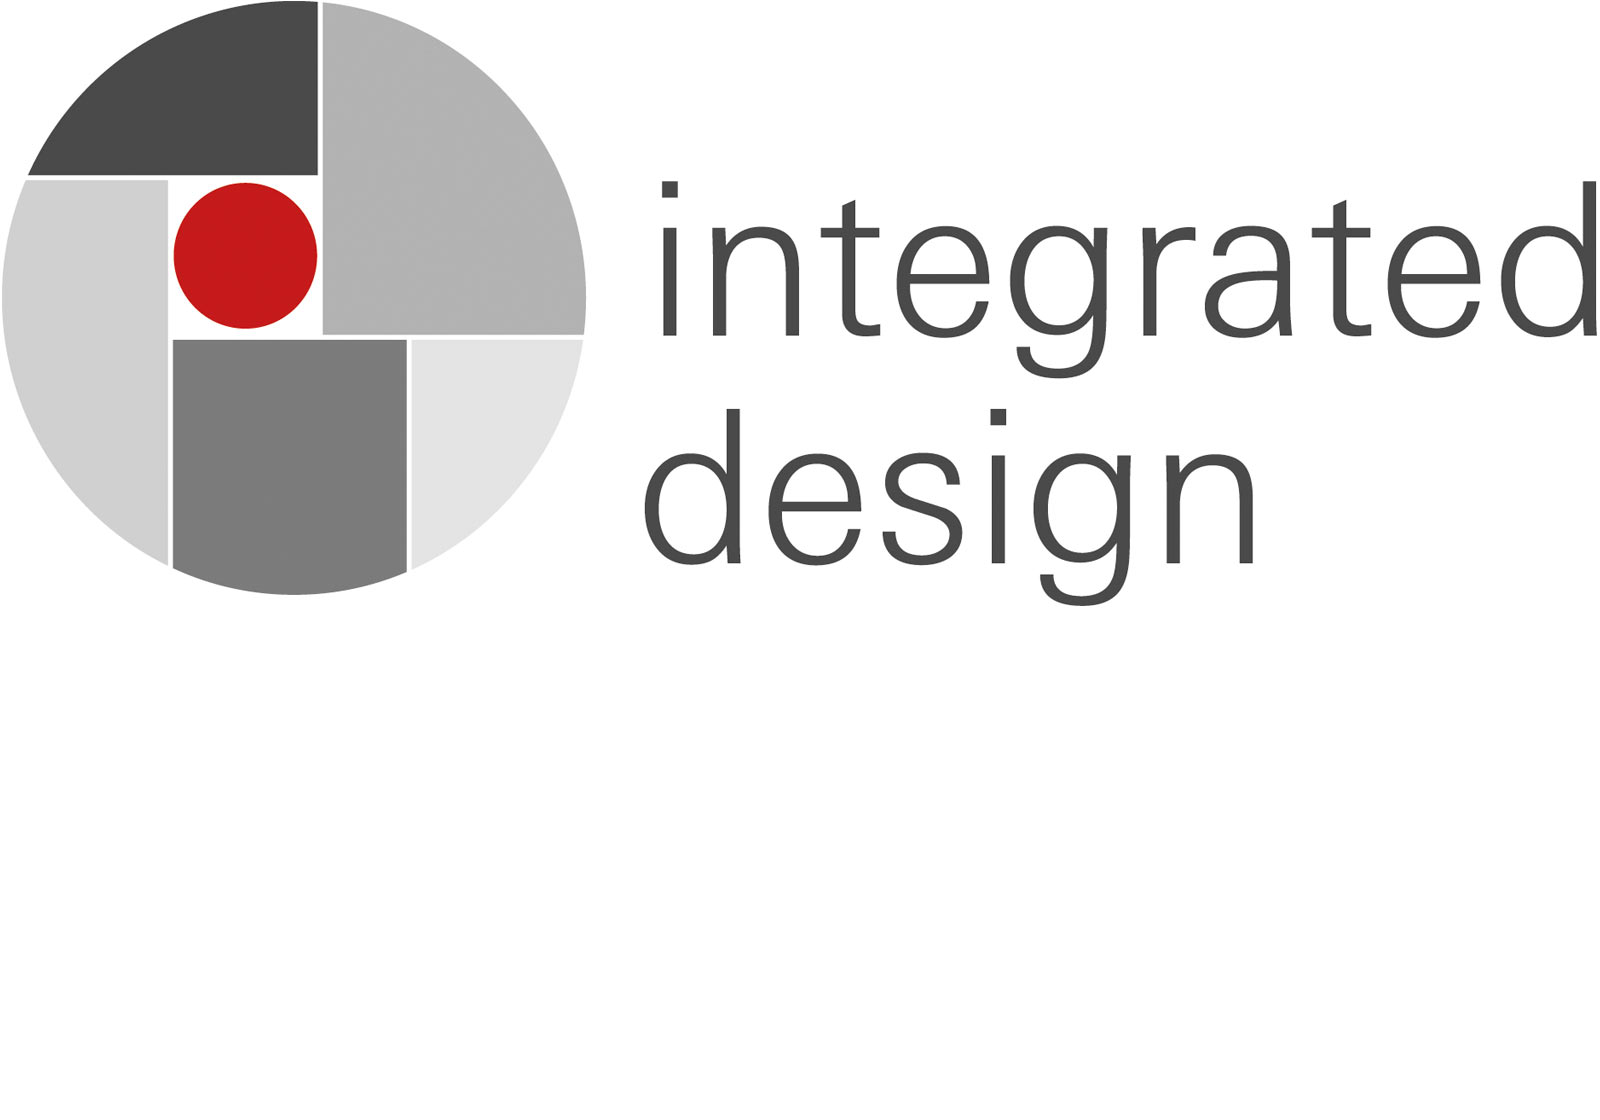 Symbol for Integrated Design. Copyright: ATP architects engineers